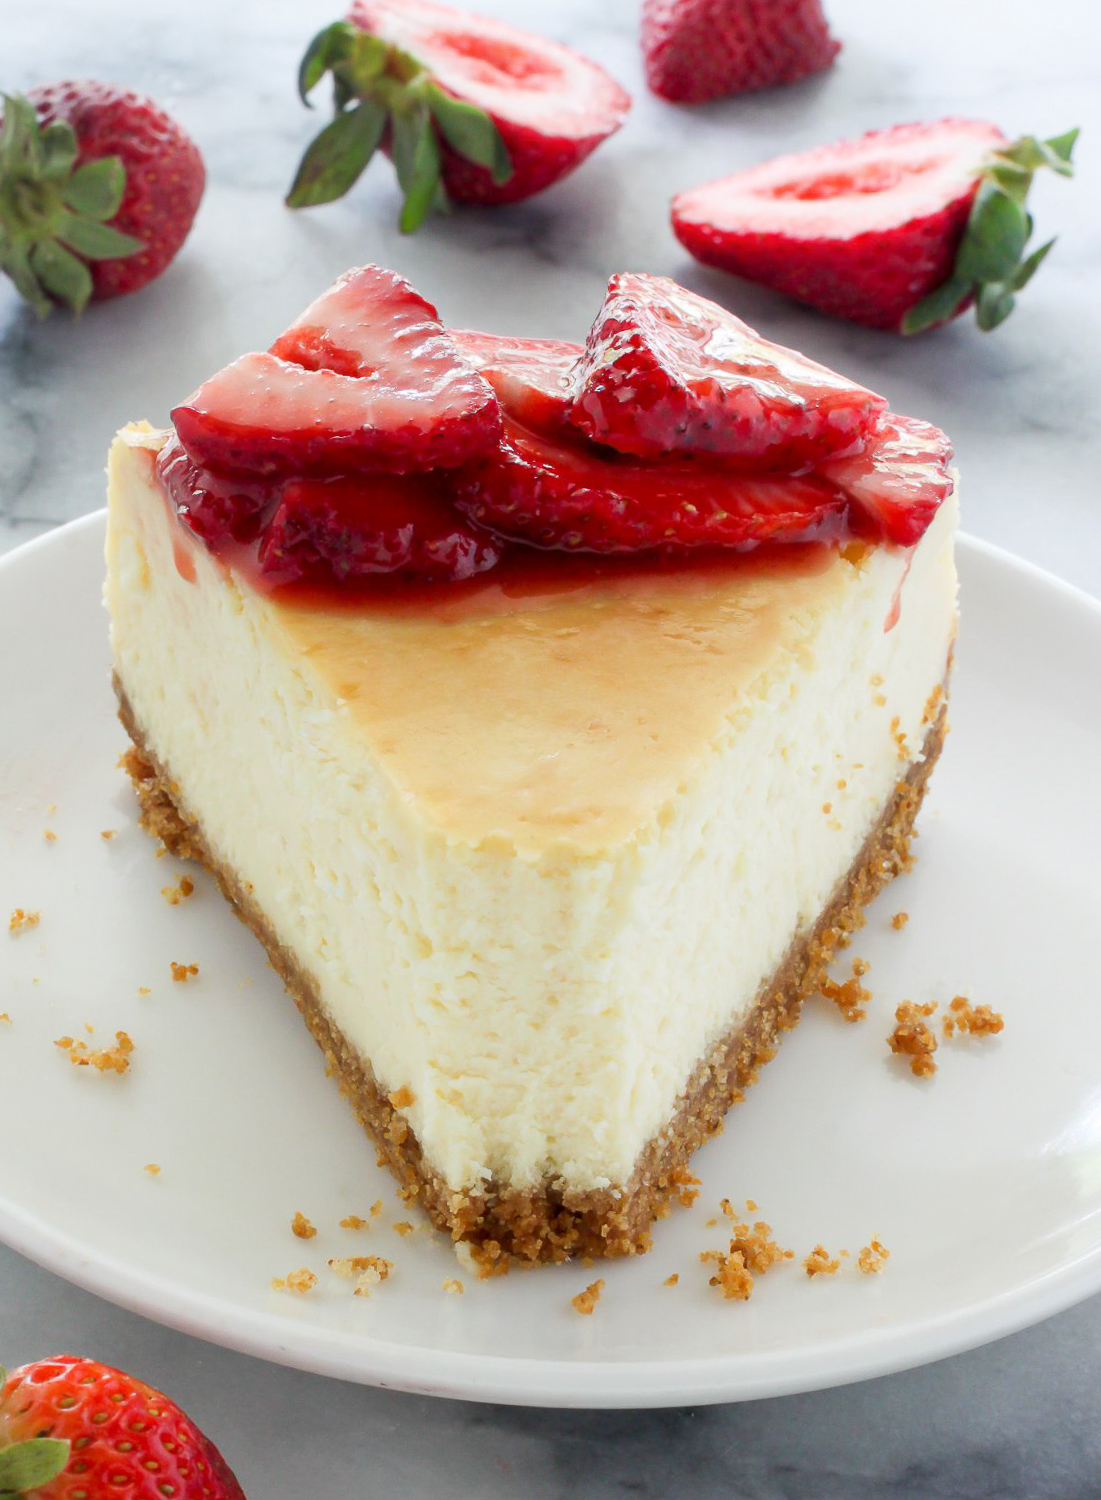 13 Freezer-Friendly Cheesecake Recipes for Holiday Dessert